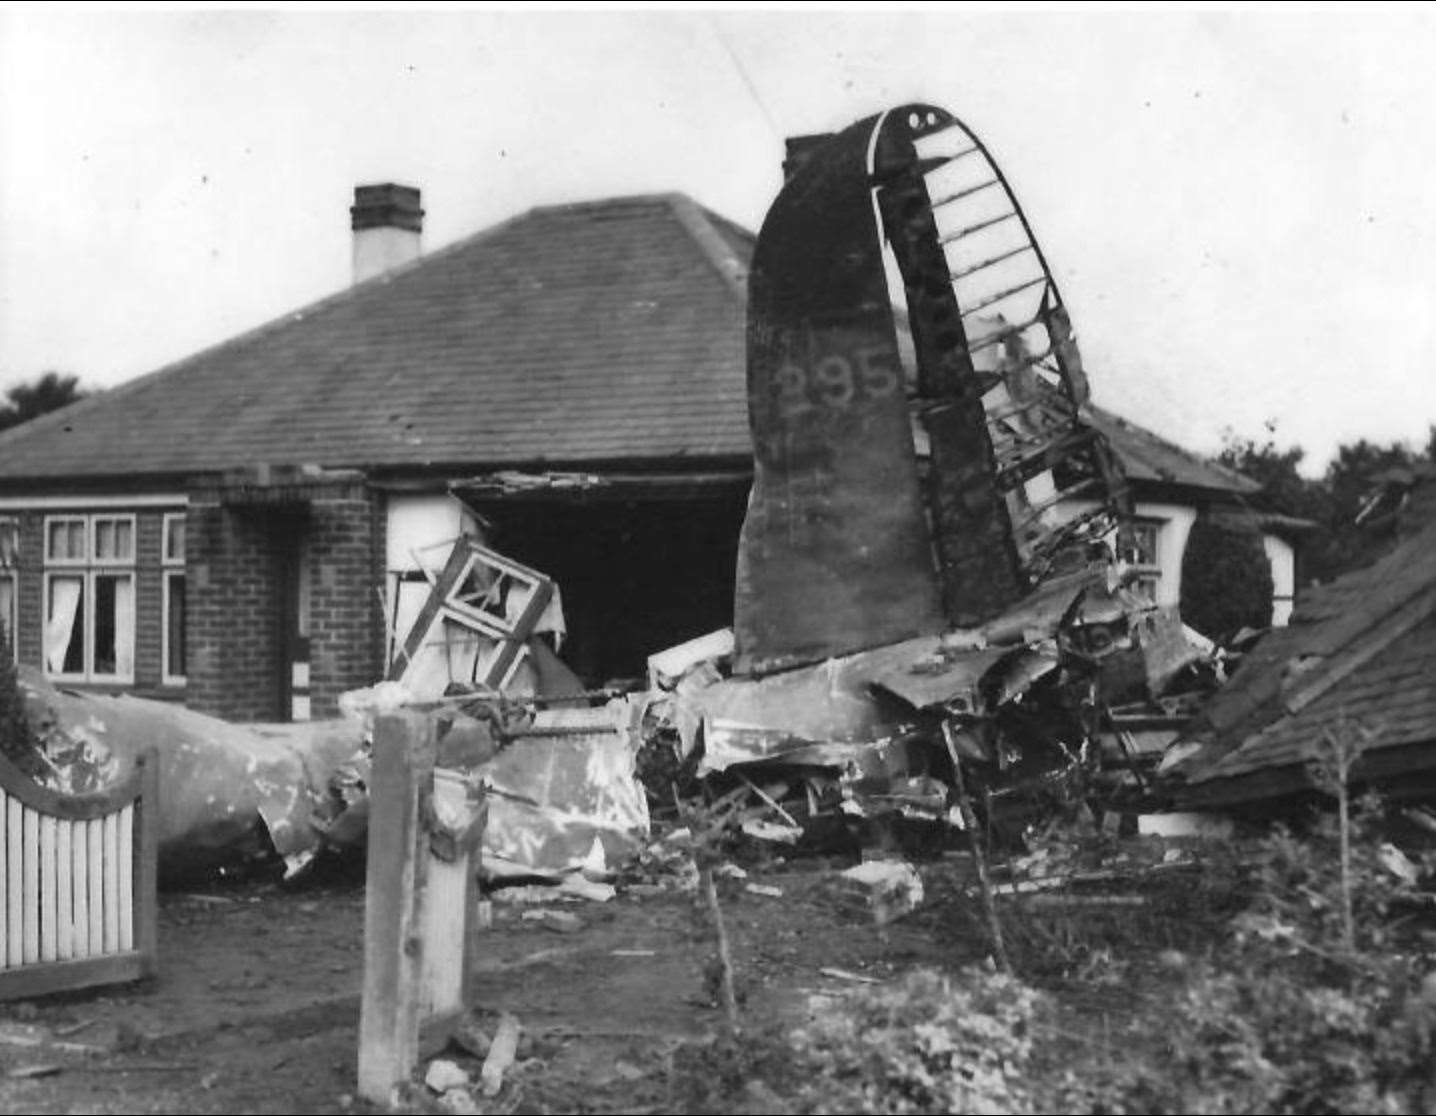 The B-26 crashed into a house in Chelmsford Road in poor weather just miles from Matching airfield on its way back from France